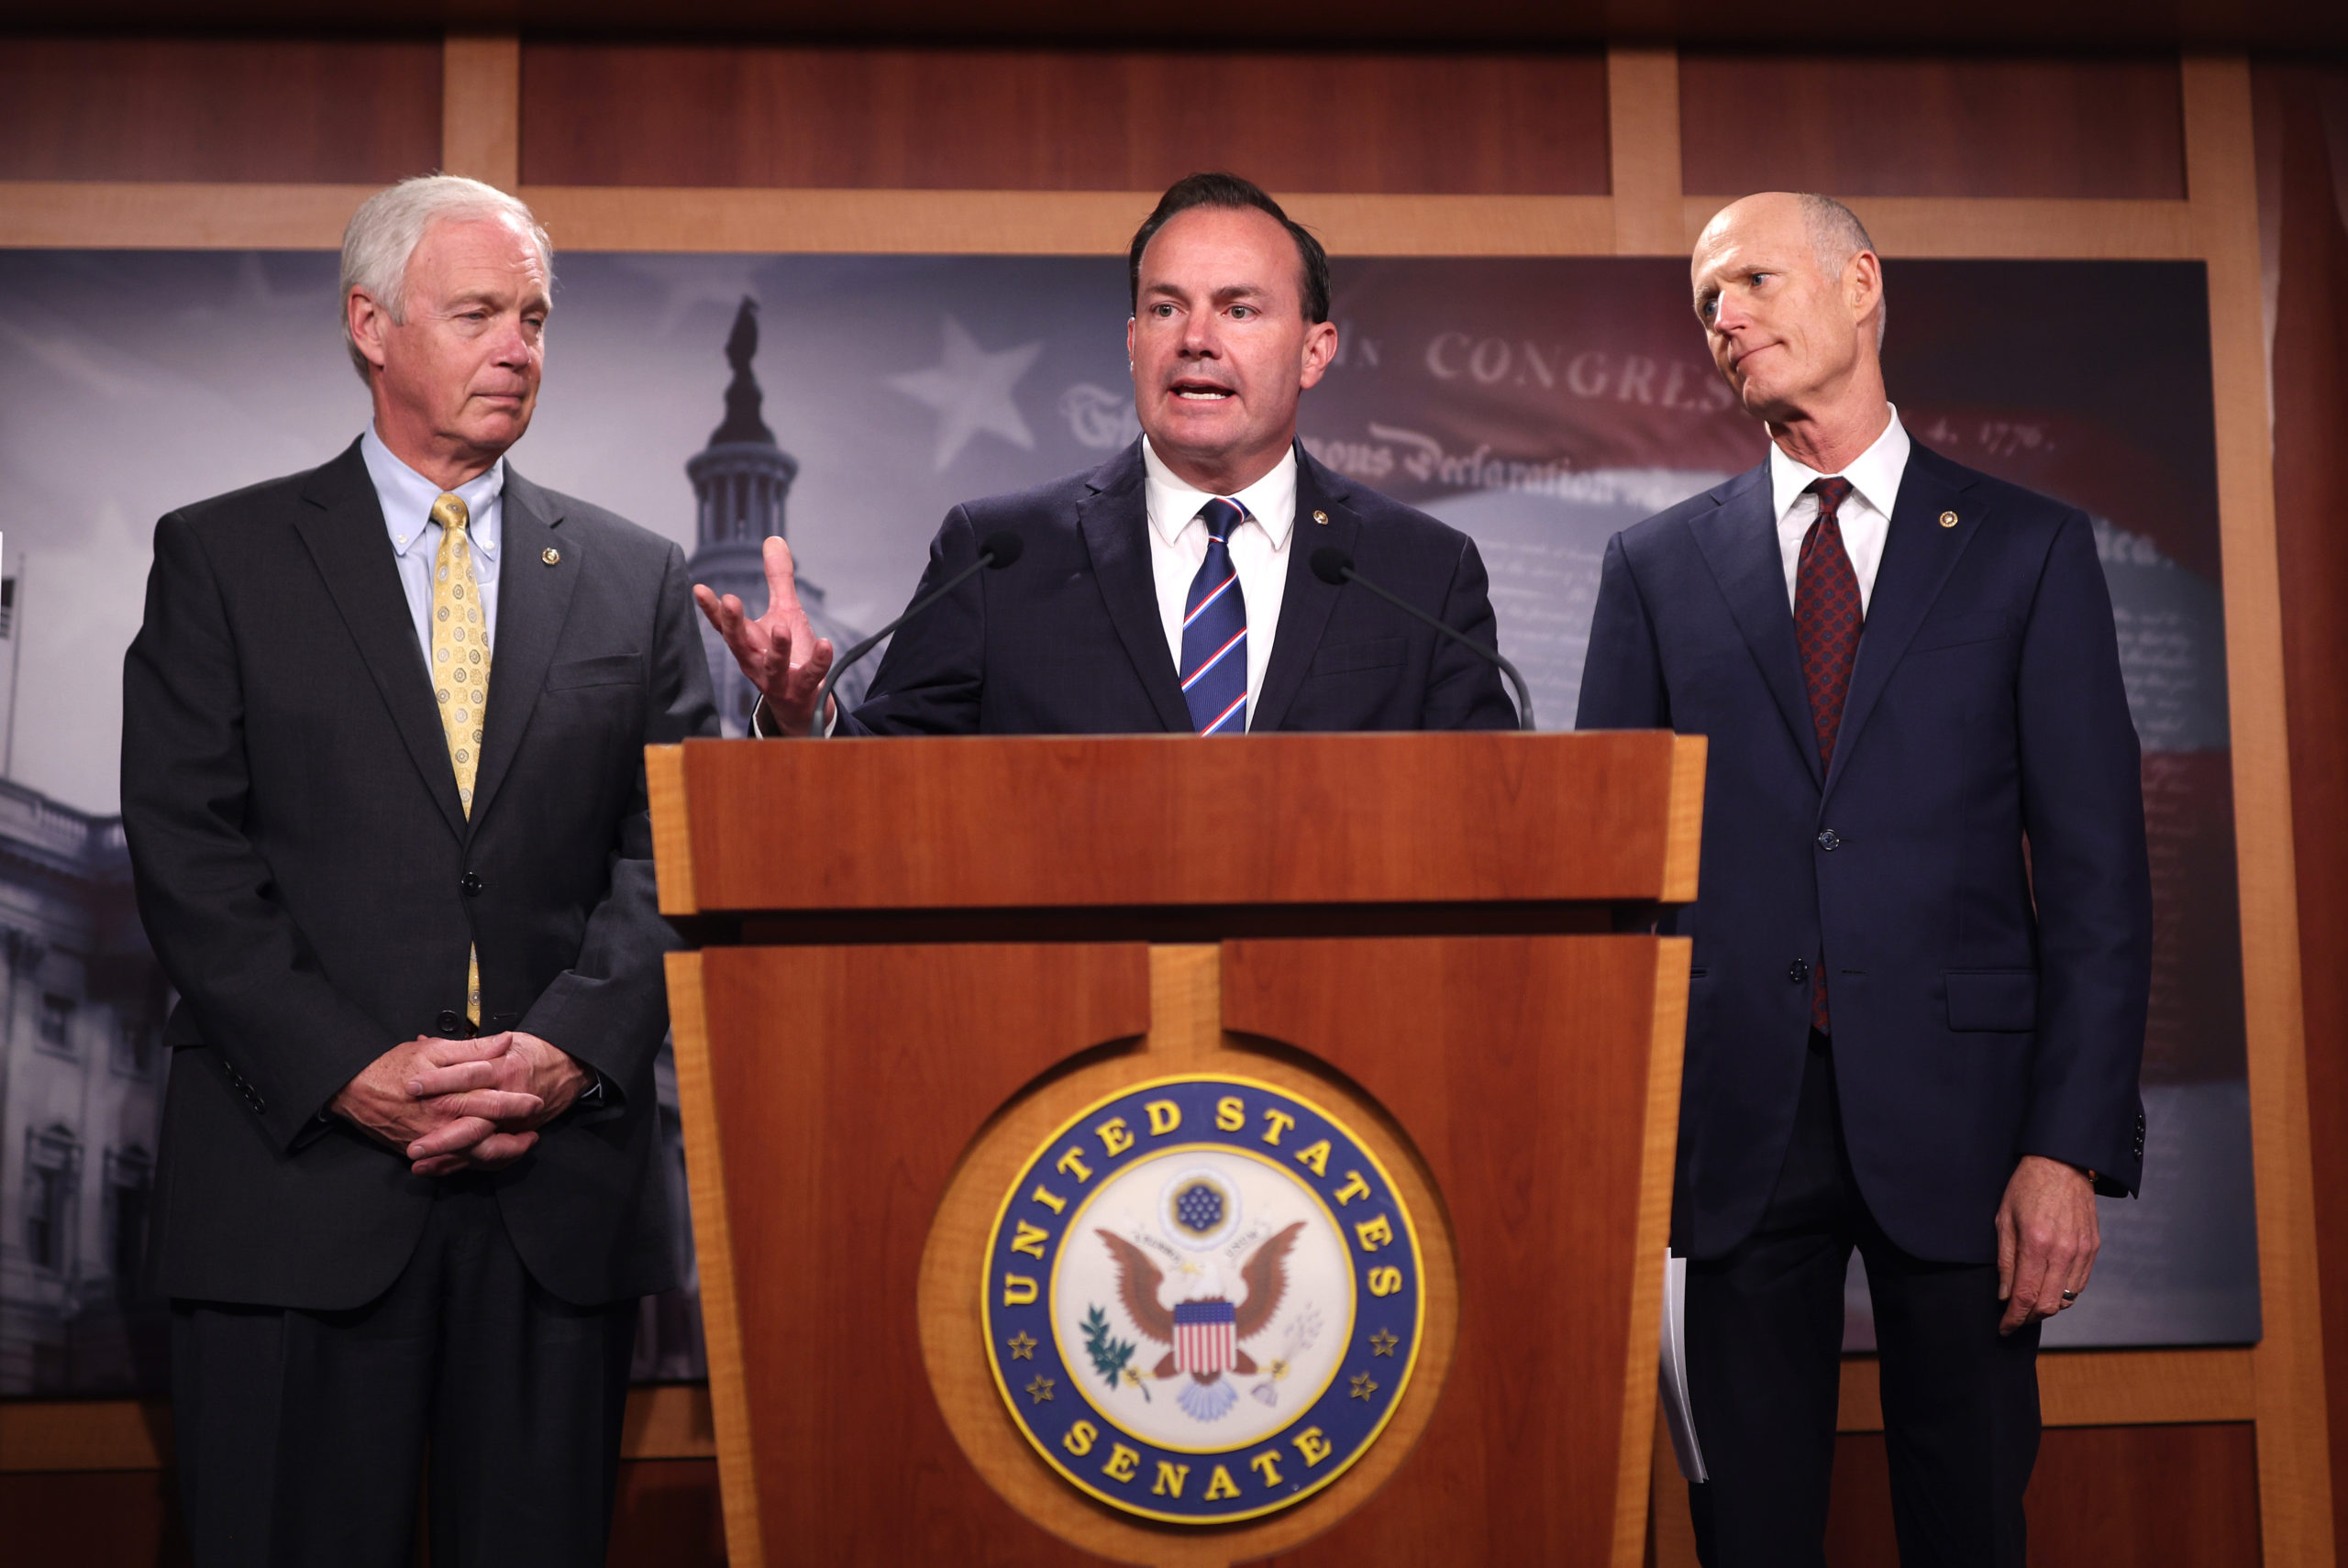 Republican Sens. Ron Johnson, Mike Lee and Sen. Rick Scott speak on an infrastructure bill making its way through Congress, saying it will increase the debt, inflation and taxes. (Kevin Dietsch/Getty Images)